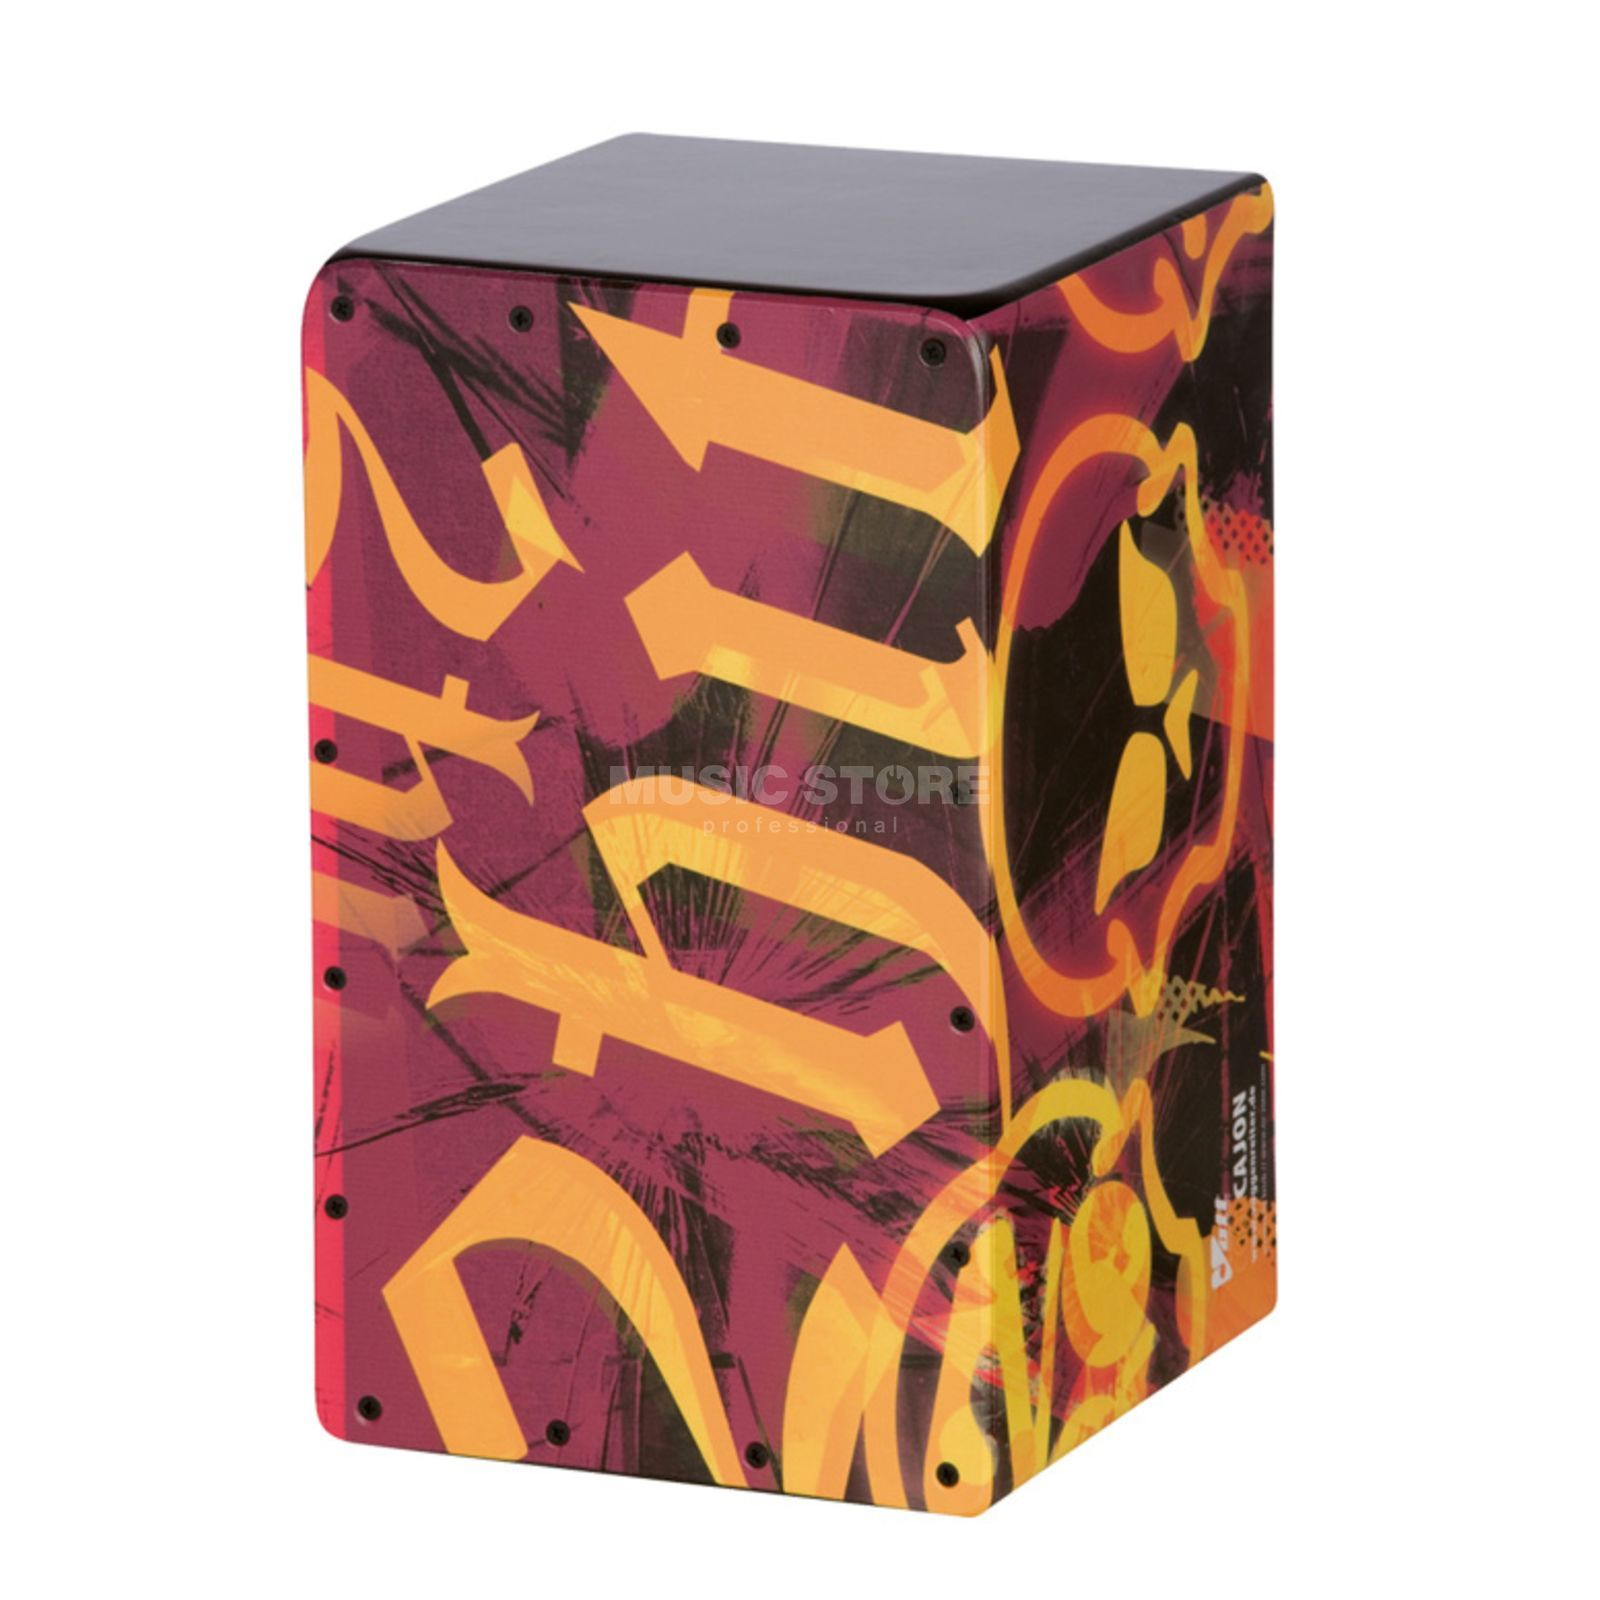 "Volt Cool Cajon ""Hells Kitchen"", Size S Product Image"